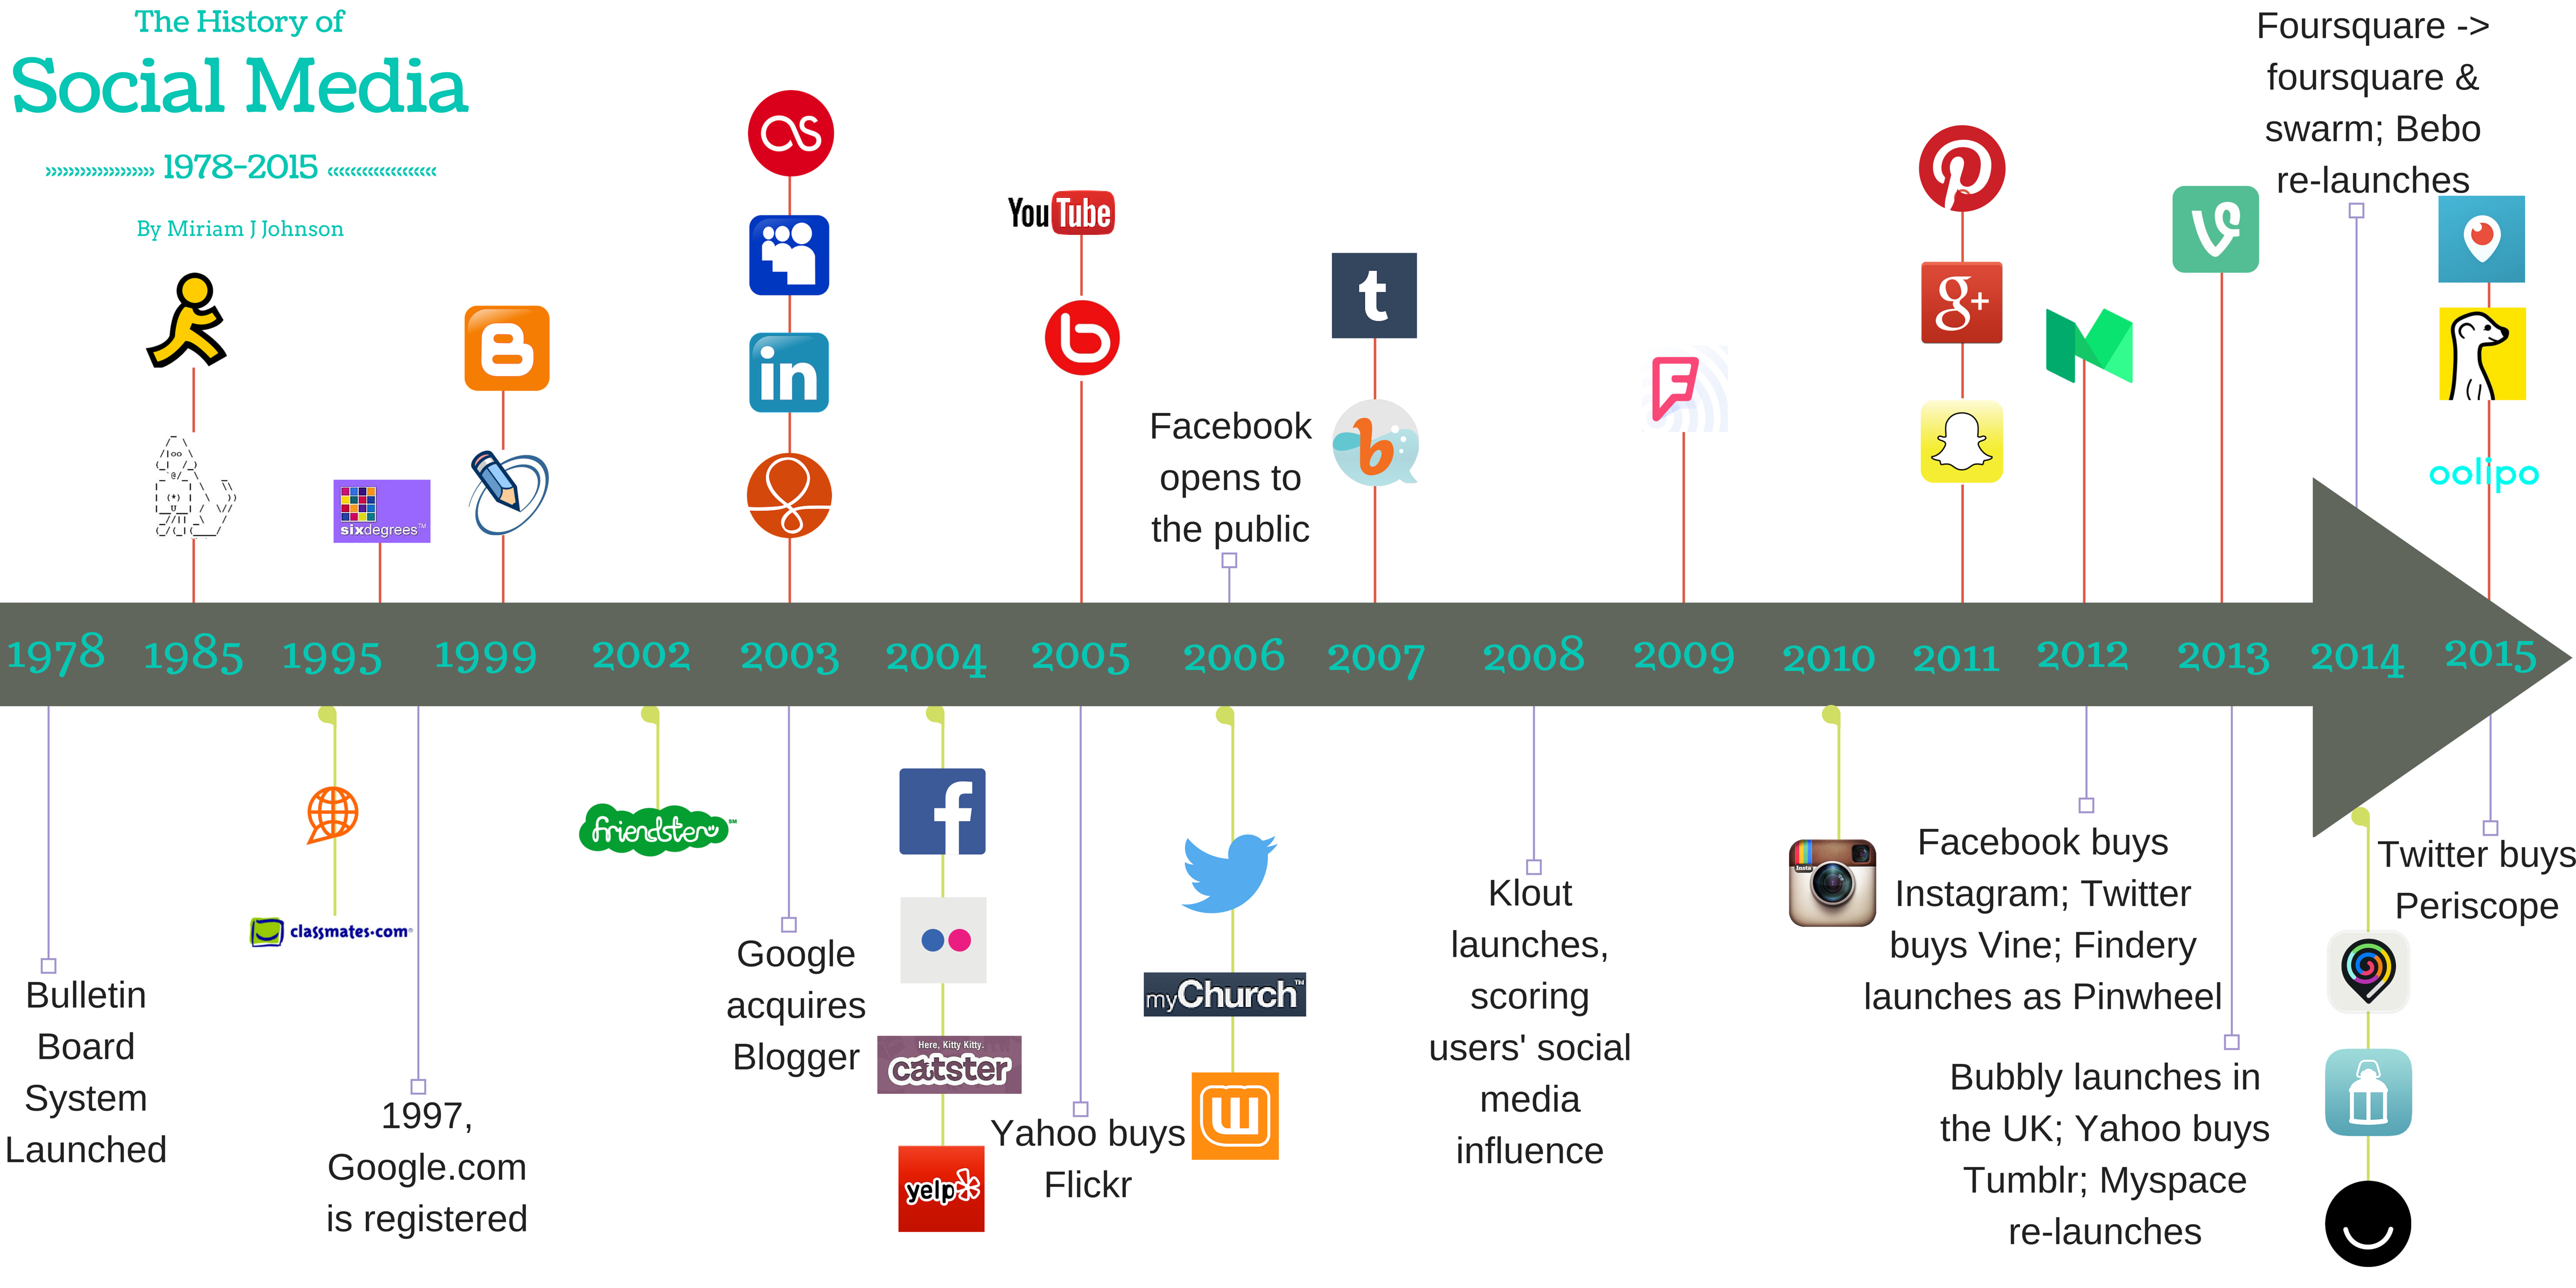 a history of technological development of internet A brief history of the internet over the past 20 years and the role of the world wide web by felicity sheppard , staff updated may 27, 2014 19:55:28.